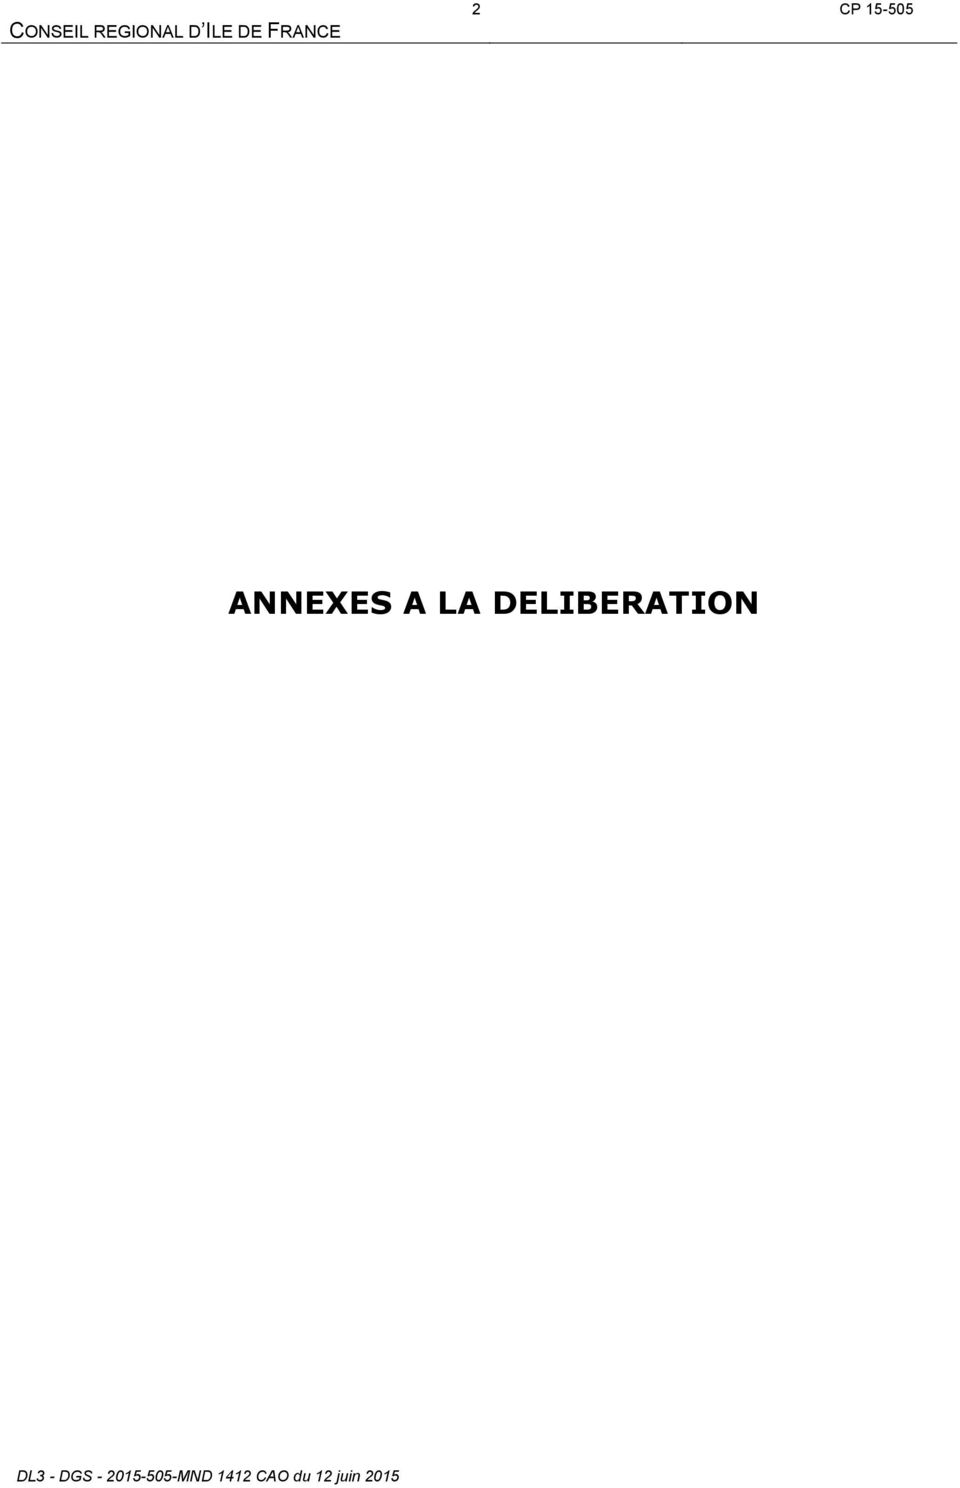 LA DELIBERATION DL3 - DGS -